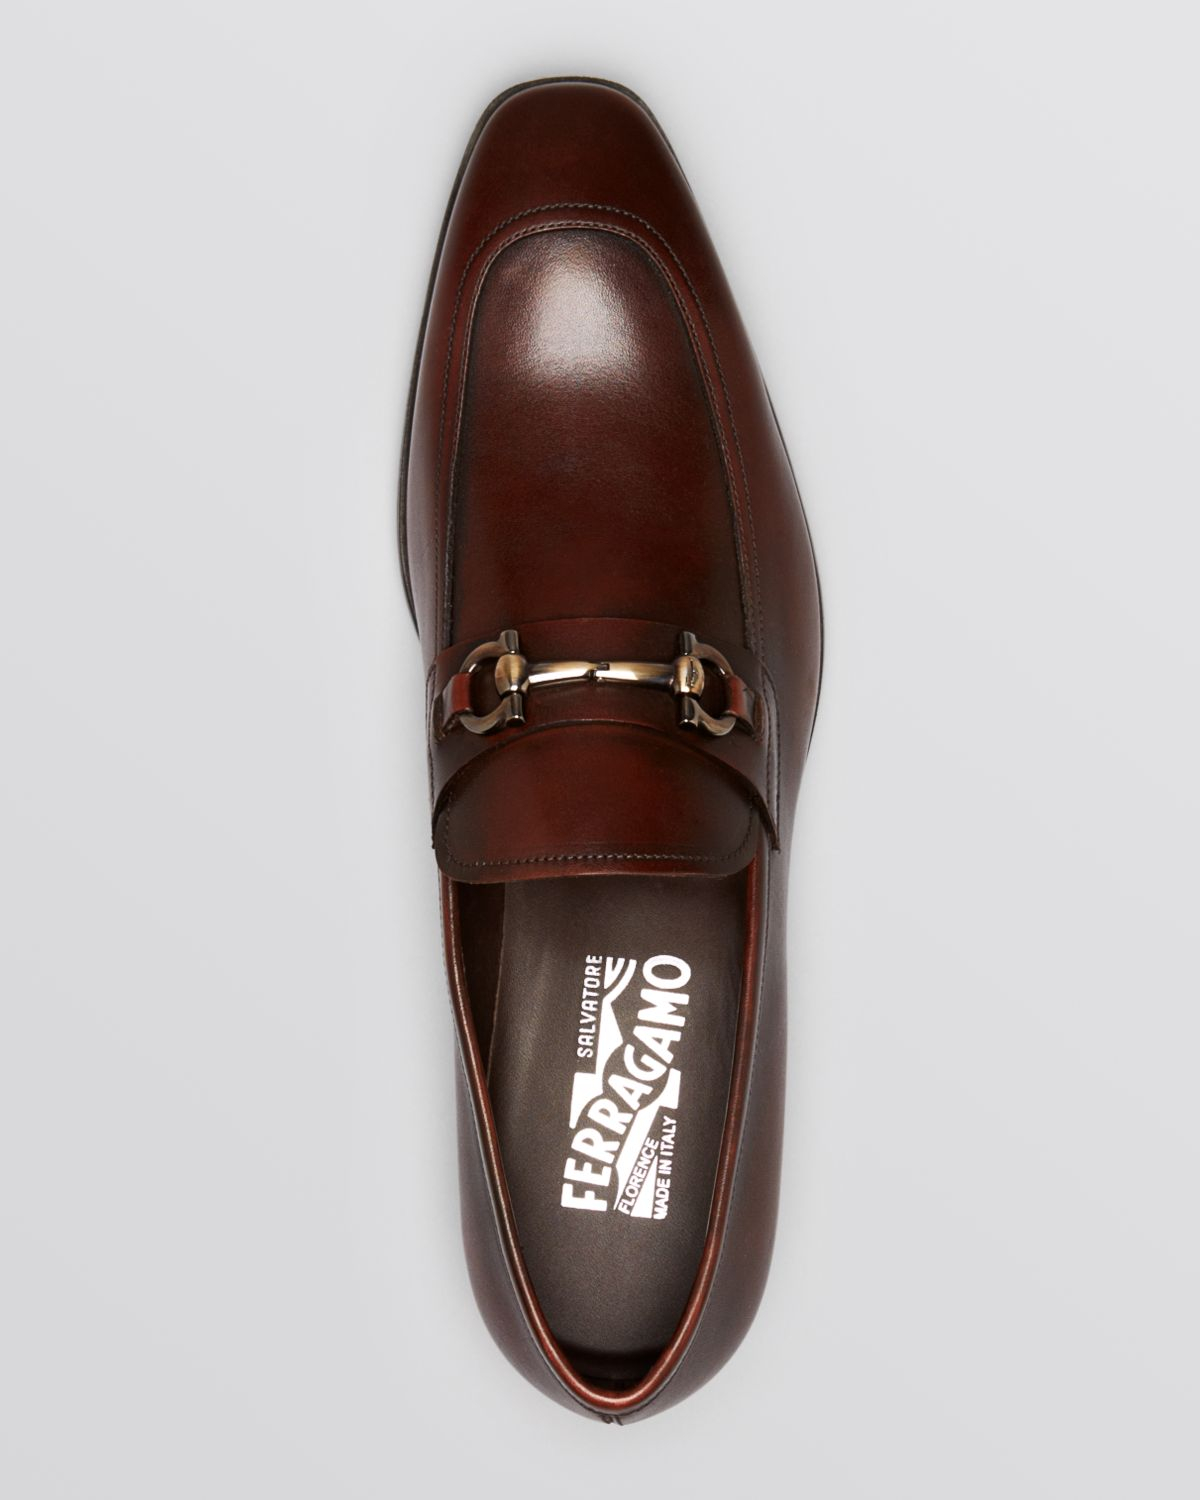 Salvatore Ferragamo Brown Shoes